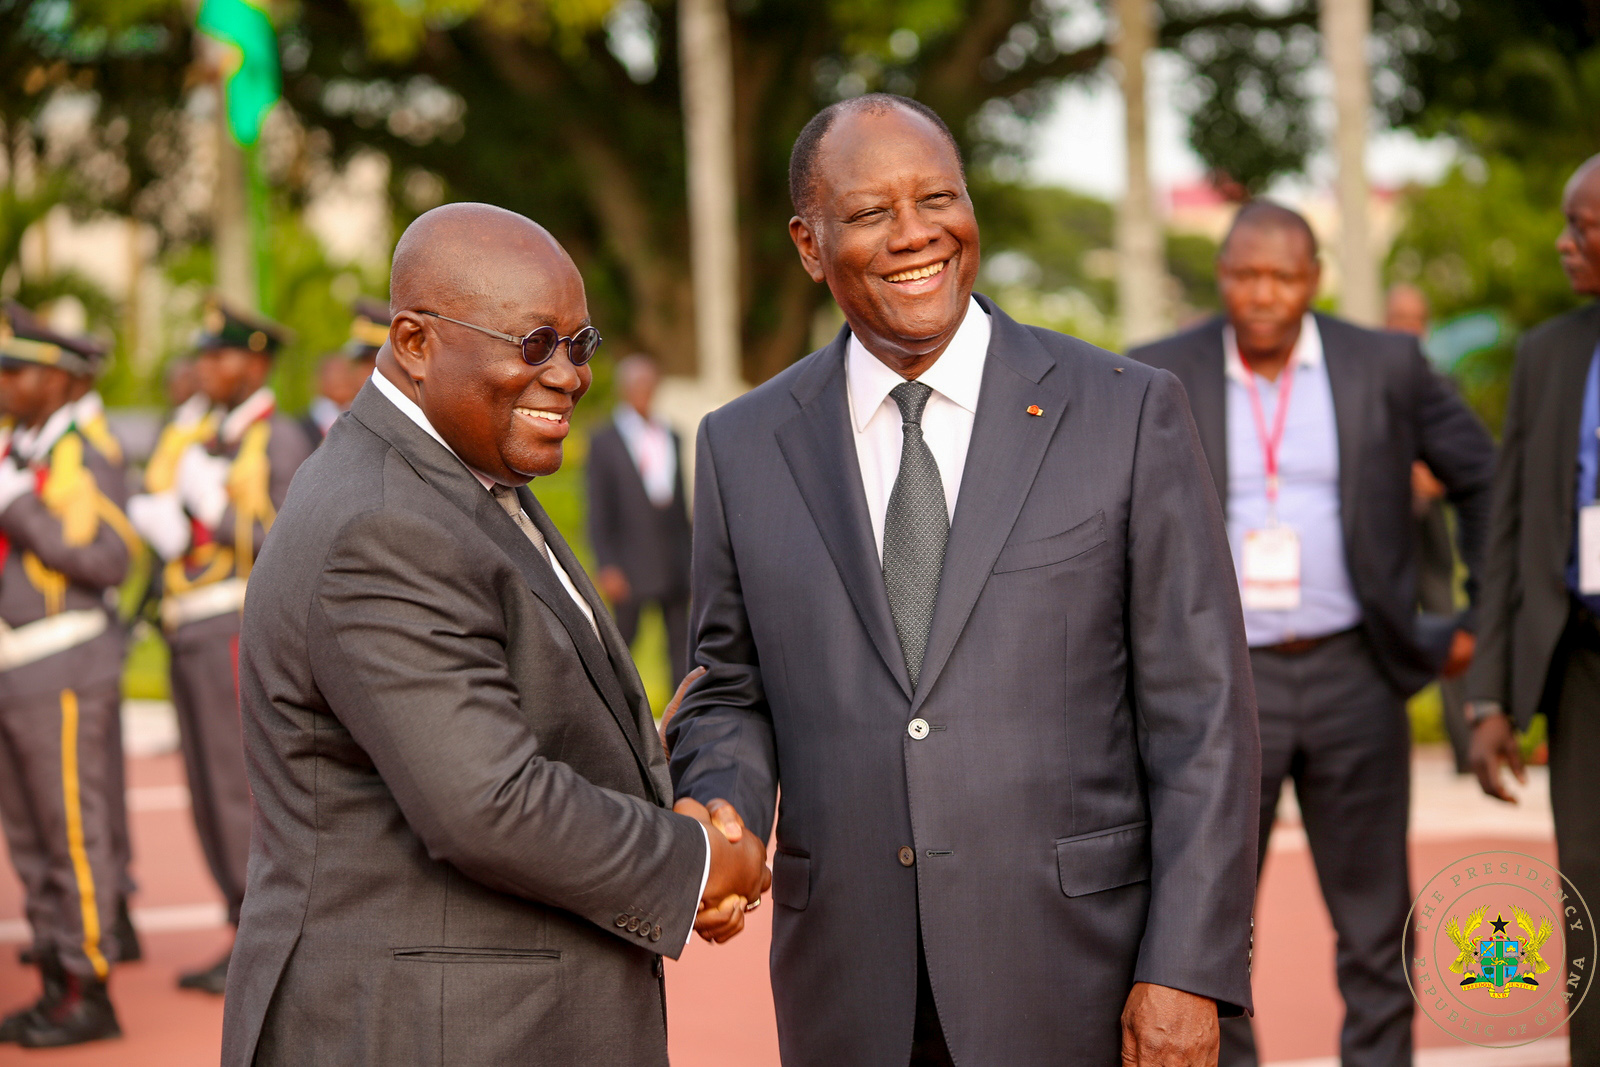 Ghana, Cote d'Ivoire to sign agreement for strategic partnership